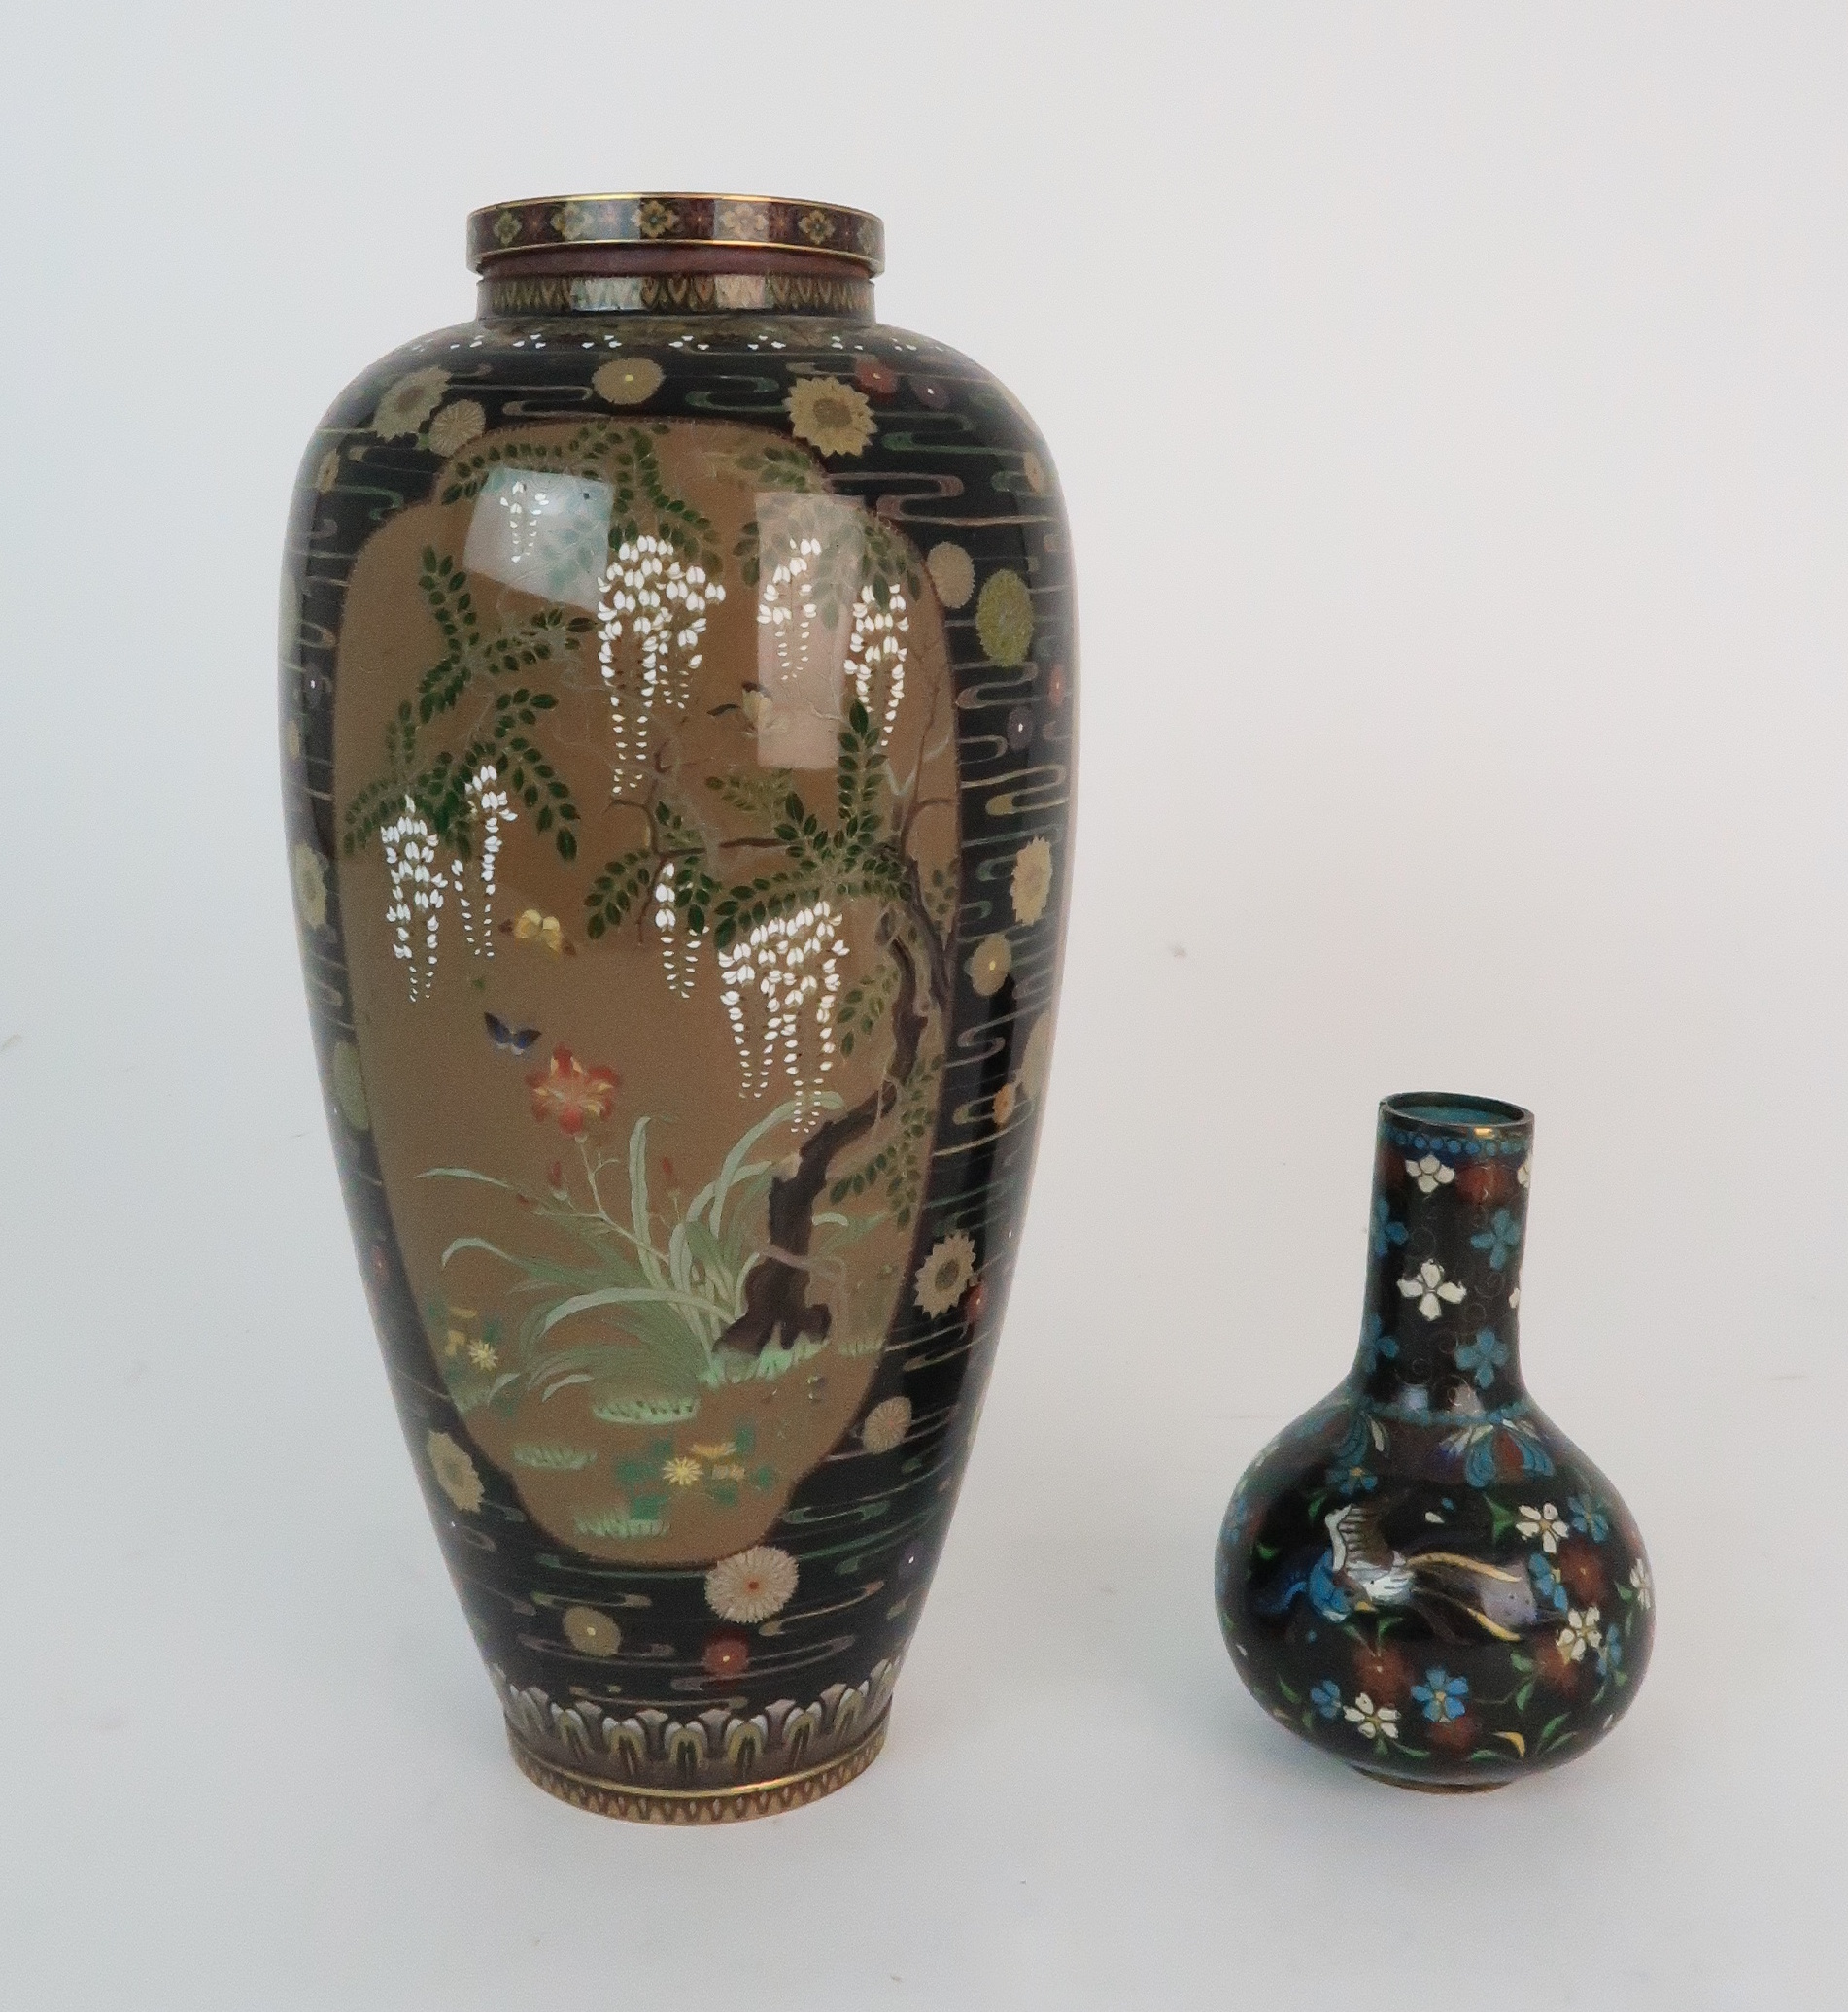 A JAPANESE CLOISONNE BALUSTER VASE finely decorated with panels of birds, butterflies, plants and